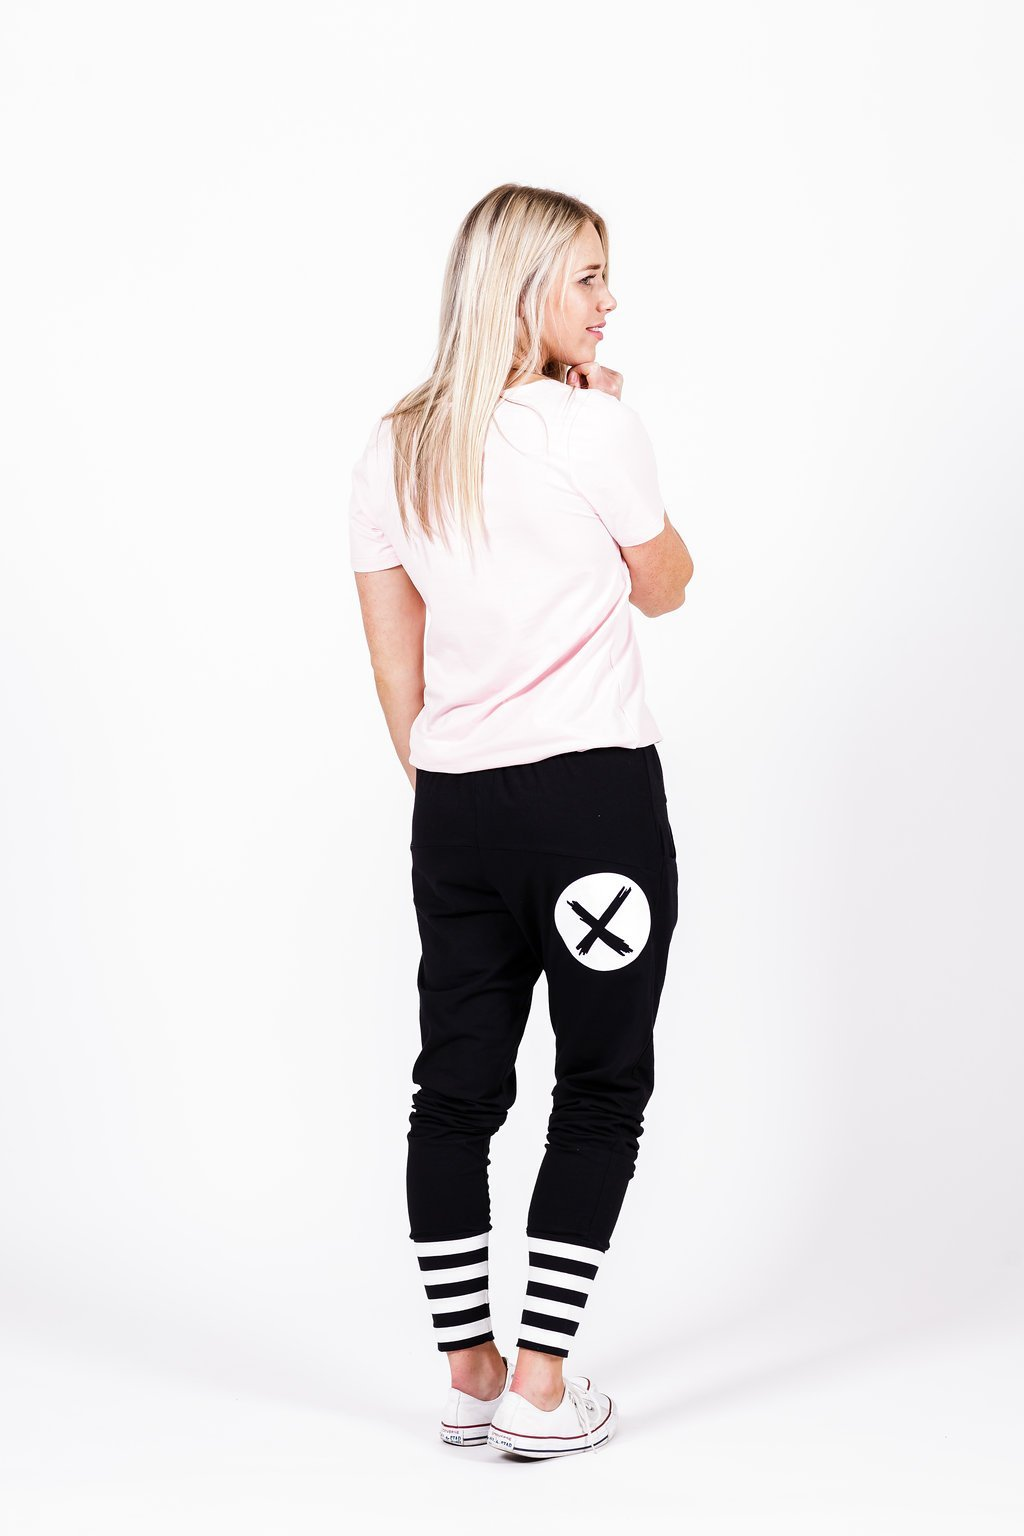 *SALE* APARTMENT PANTS - Black with White X Spot print and Stripe cuffs